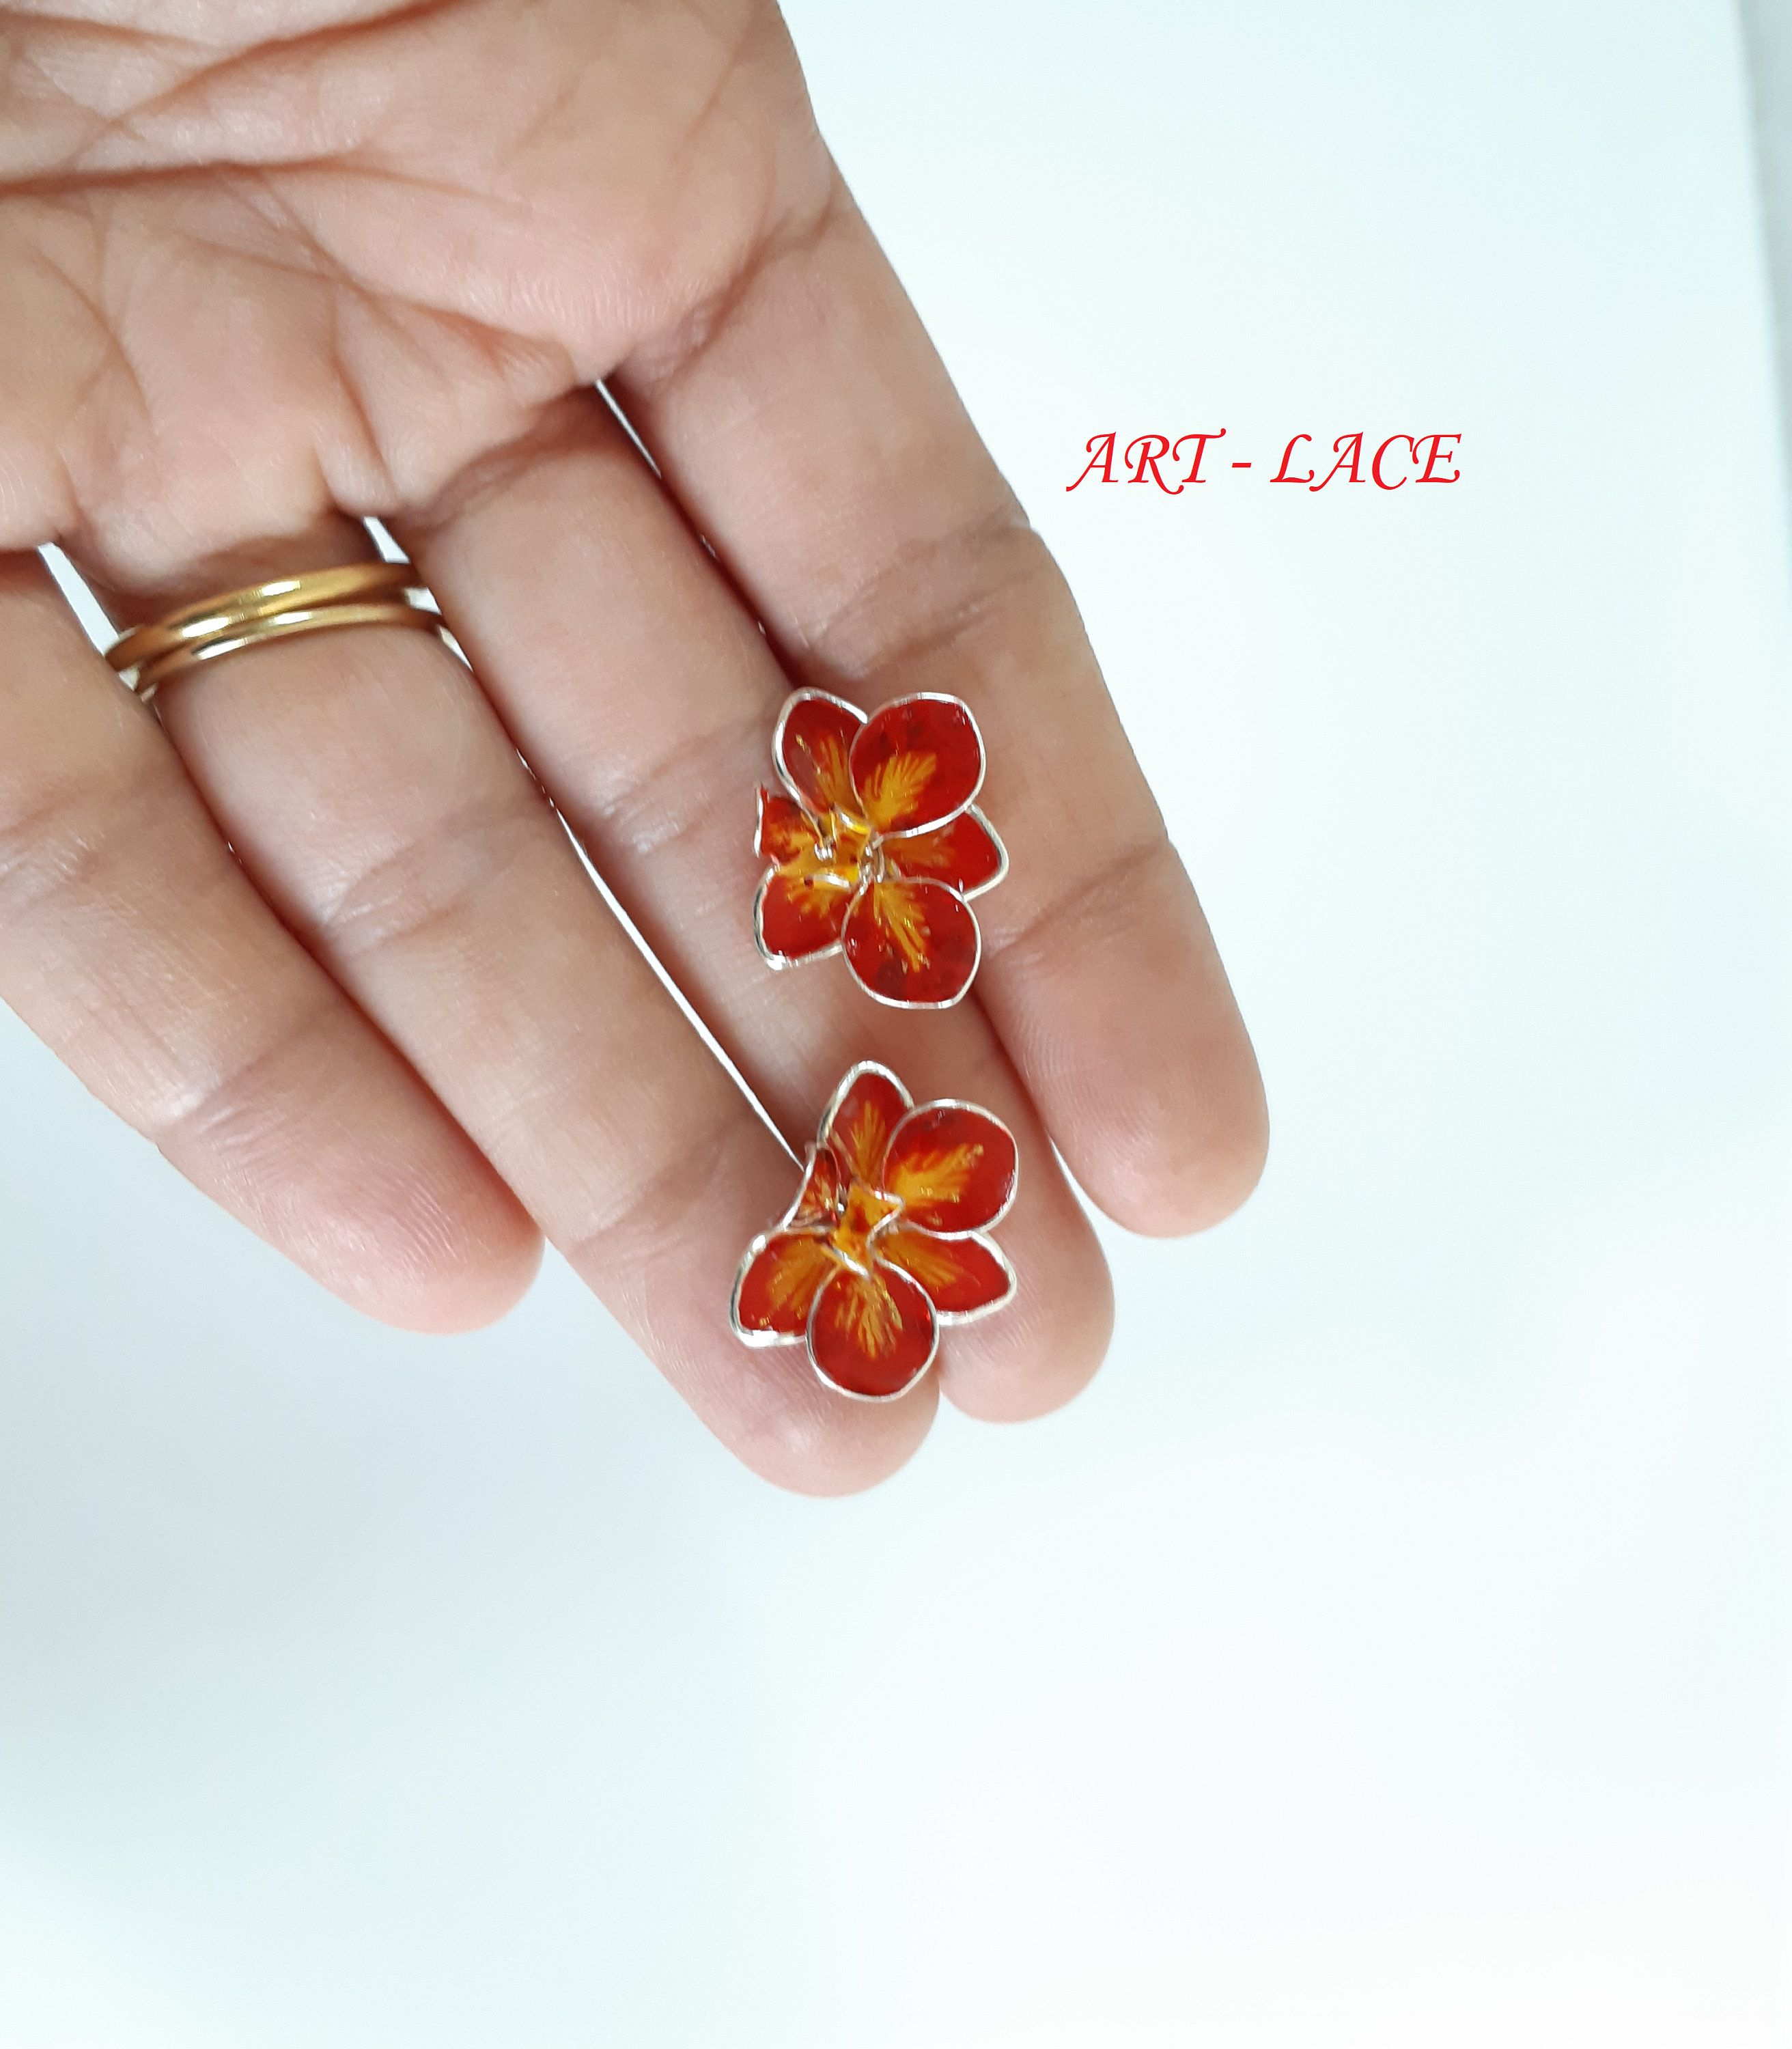 Orchid Earrings Studs Red Gold Orchids Stud Bridal Flower Earring Tiny Dainty Stud Singapore Flower Stud Flower Girl Earring Wire Resin In 2020 Dainty Studs Girls Earrings Flower Studs